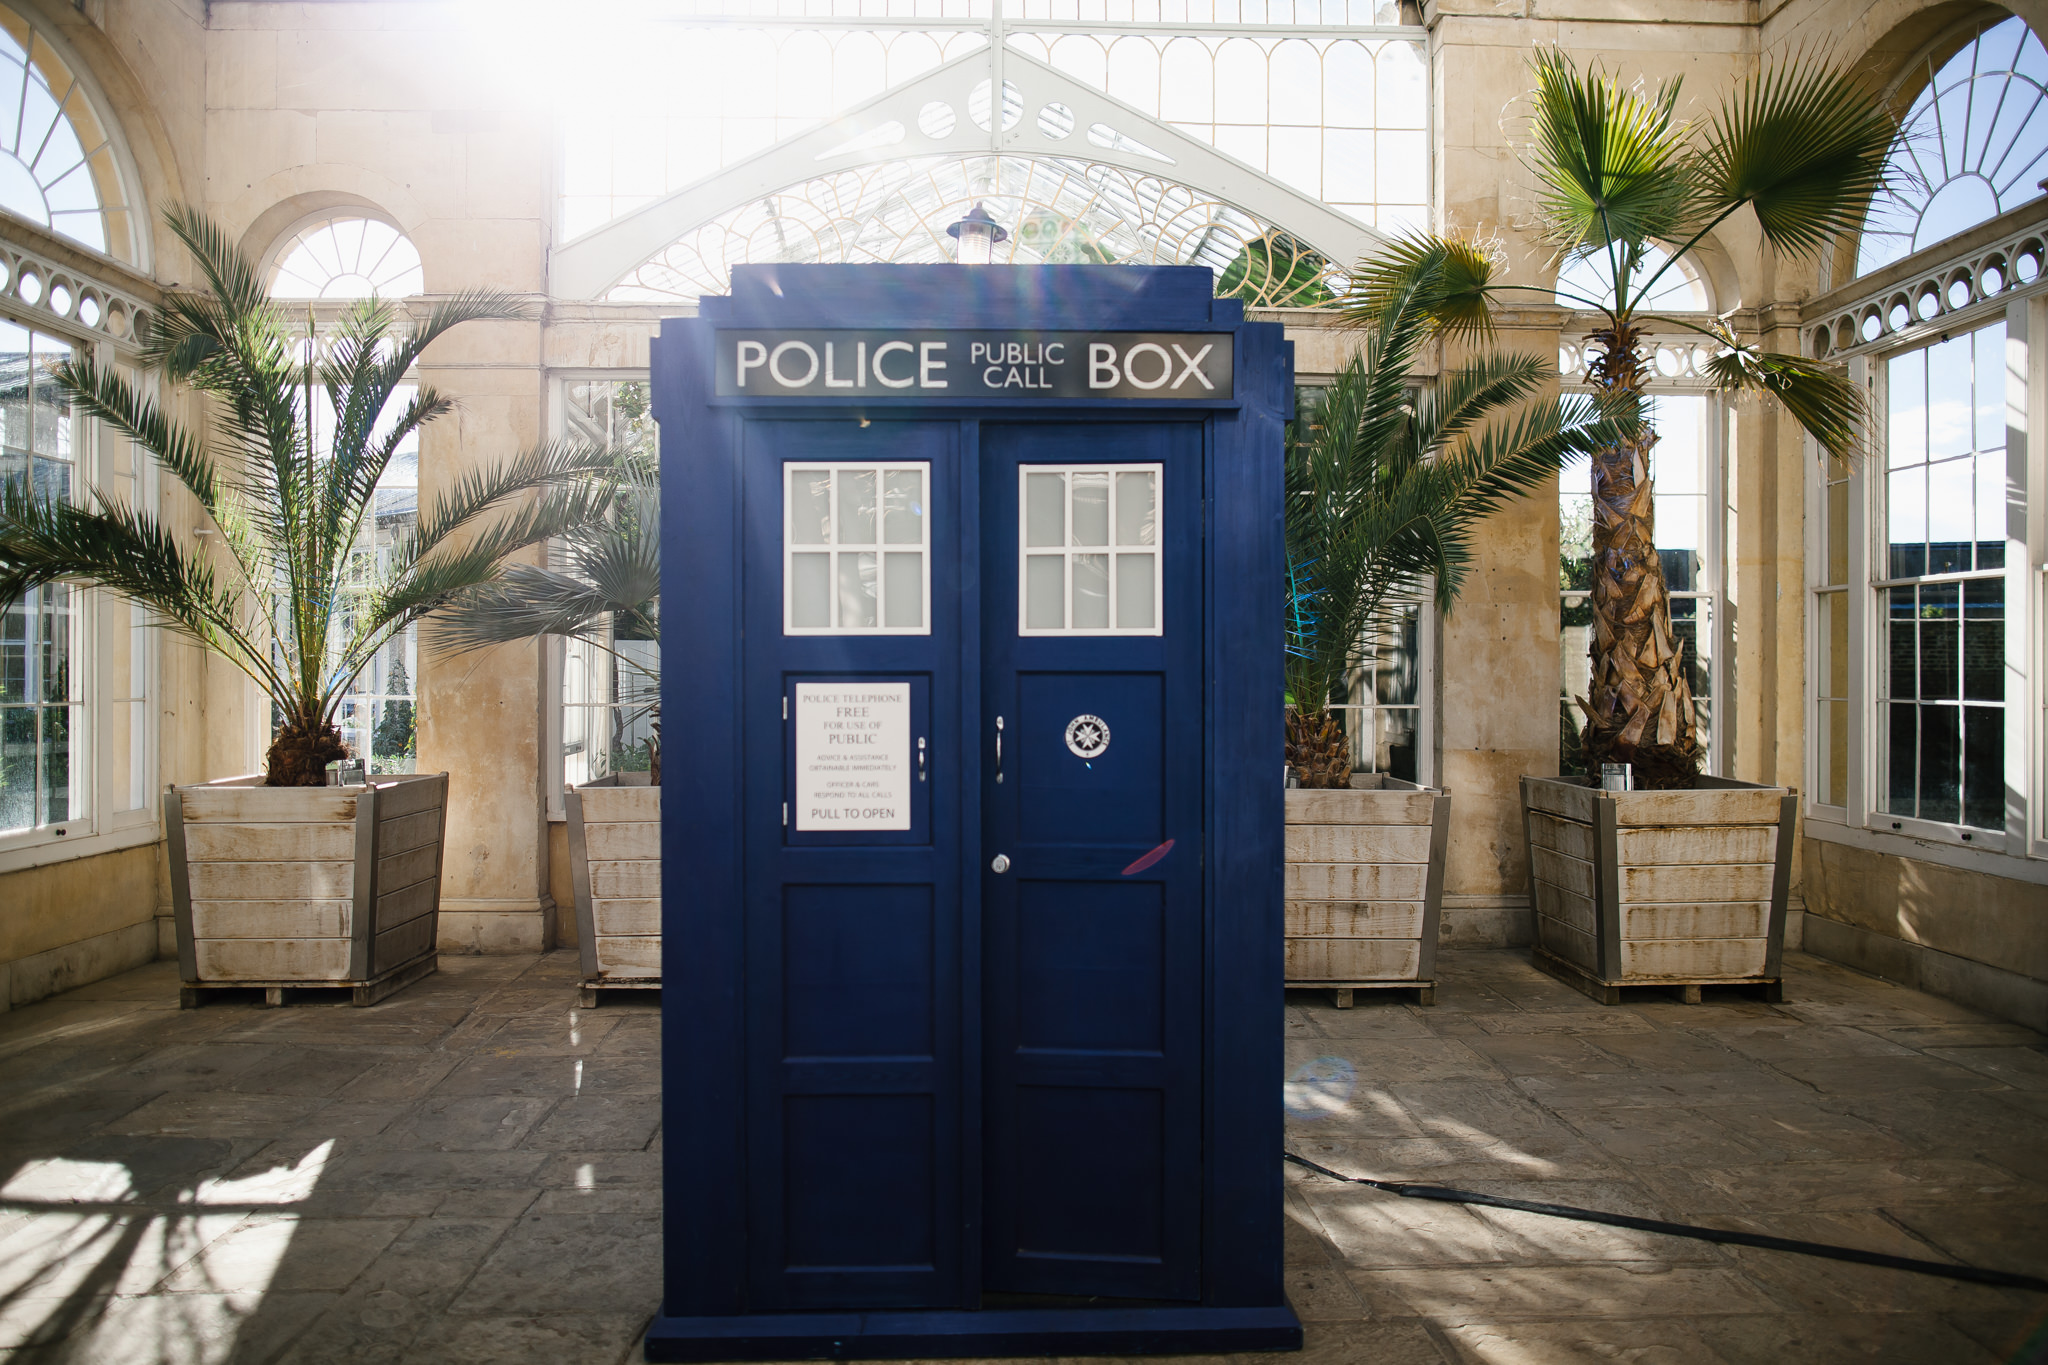 wedding dr who phone booth police bbox